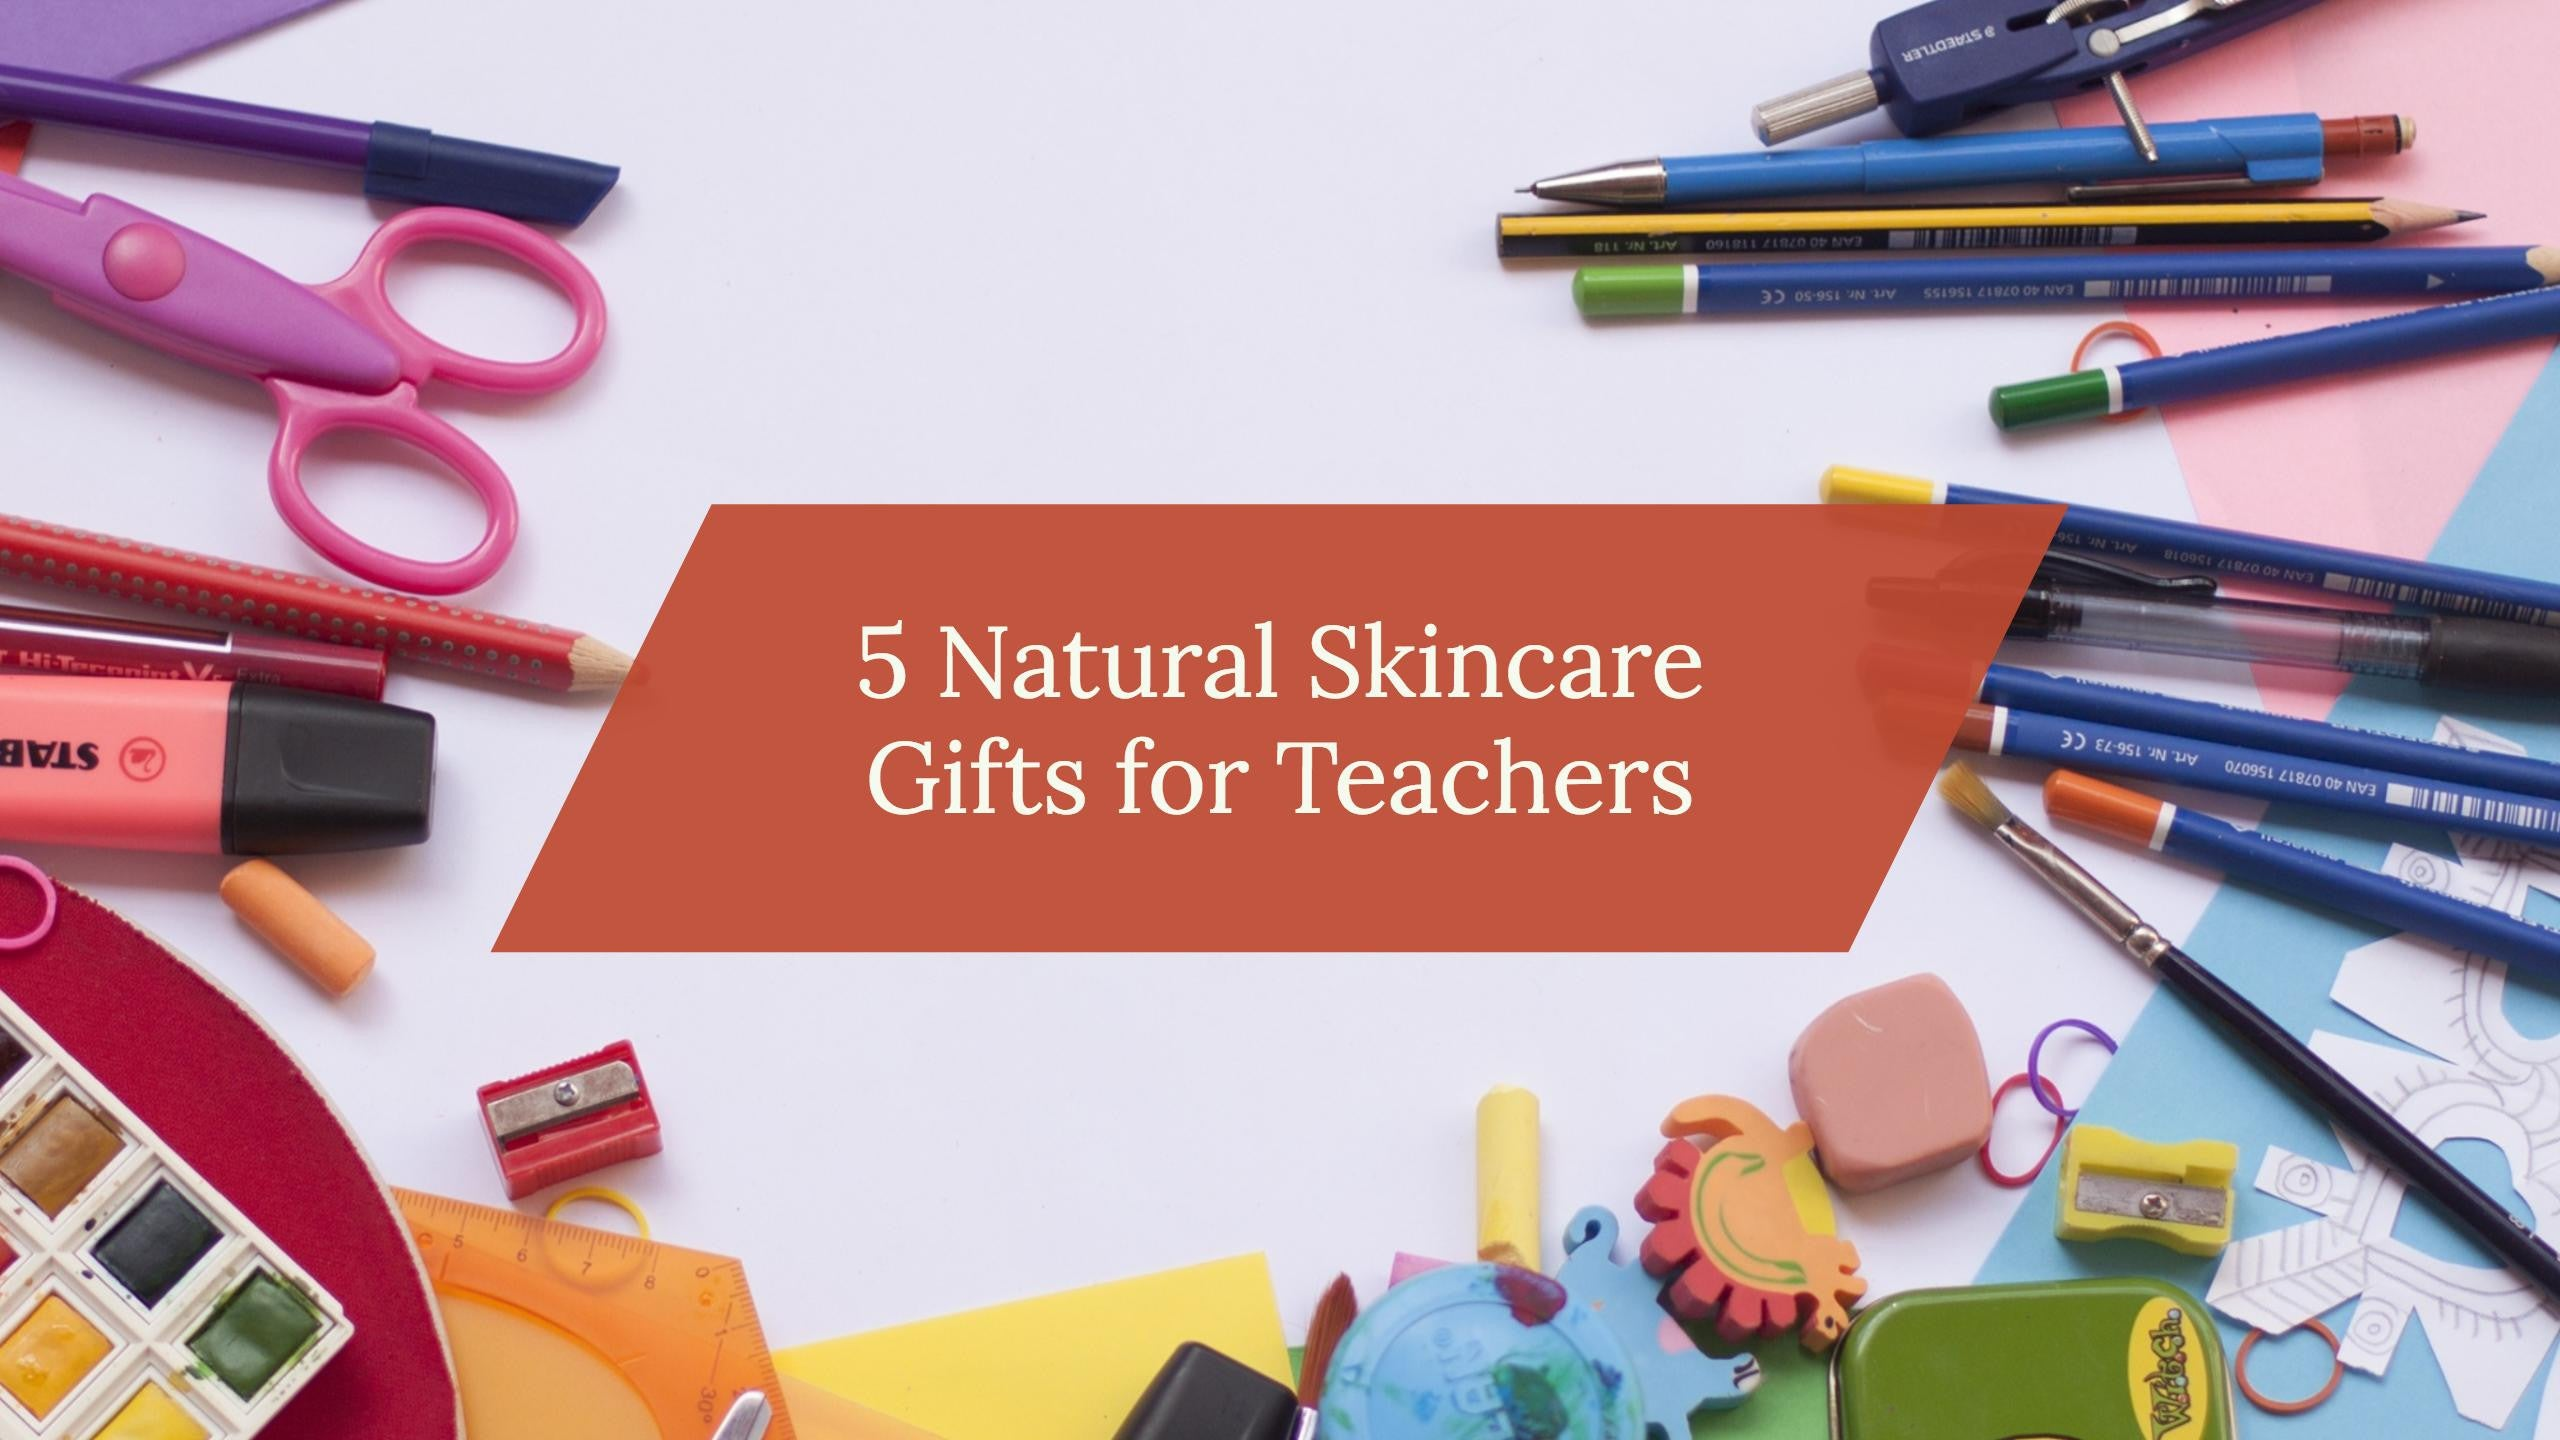 5 Natural Skincare Gifts for Teachers